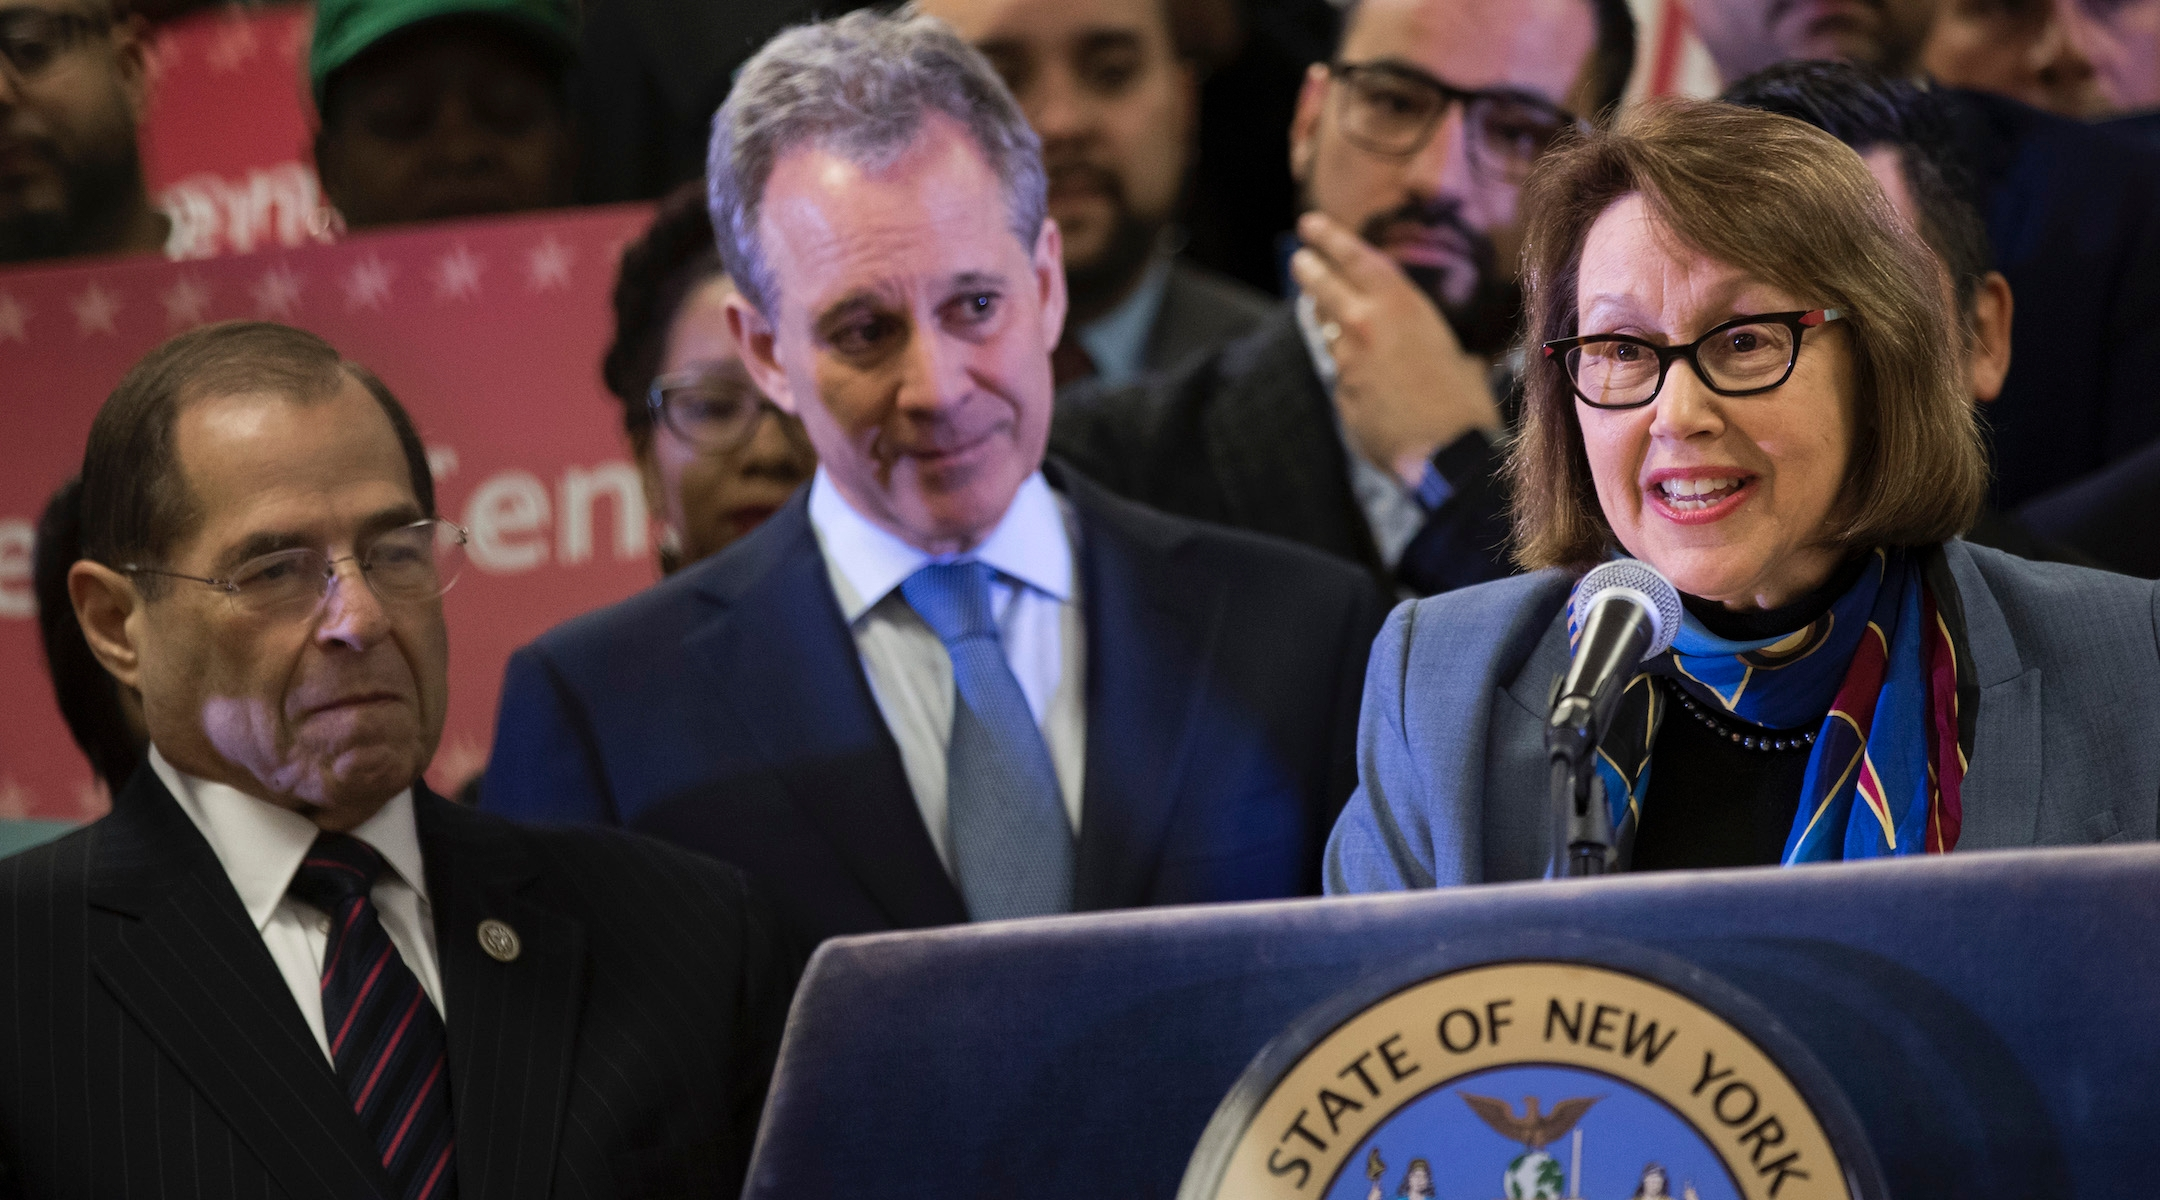 Oregon Attorney General Ellen Rosenblum speaks at a press conference to announce a multi-state lawsuit to block the Trump administration from adding a question about citizenship to the 2020 Census form in New York City on April 3, 2018. (Drew Angerer/Getty Images)